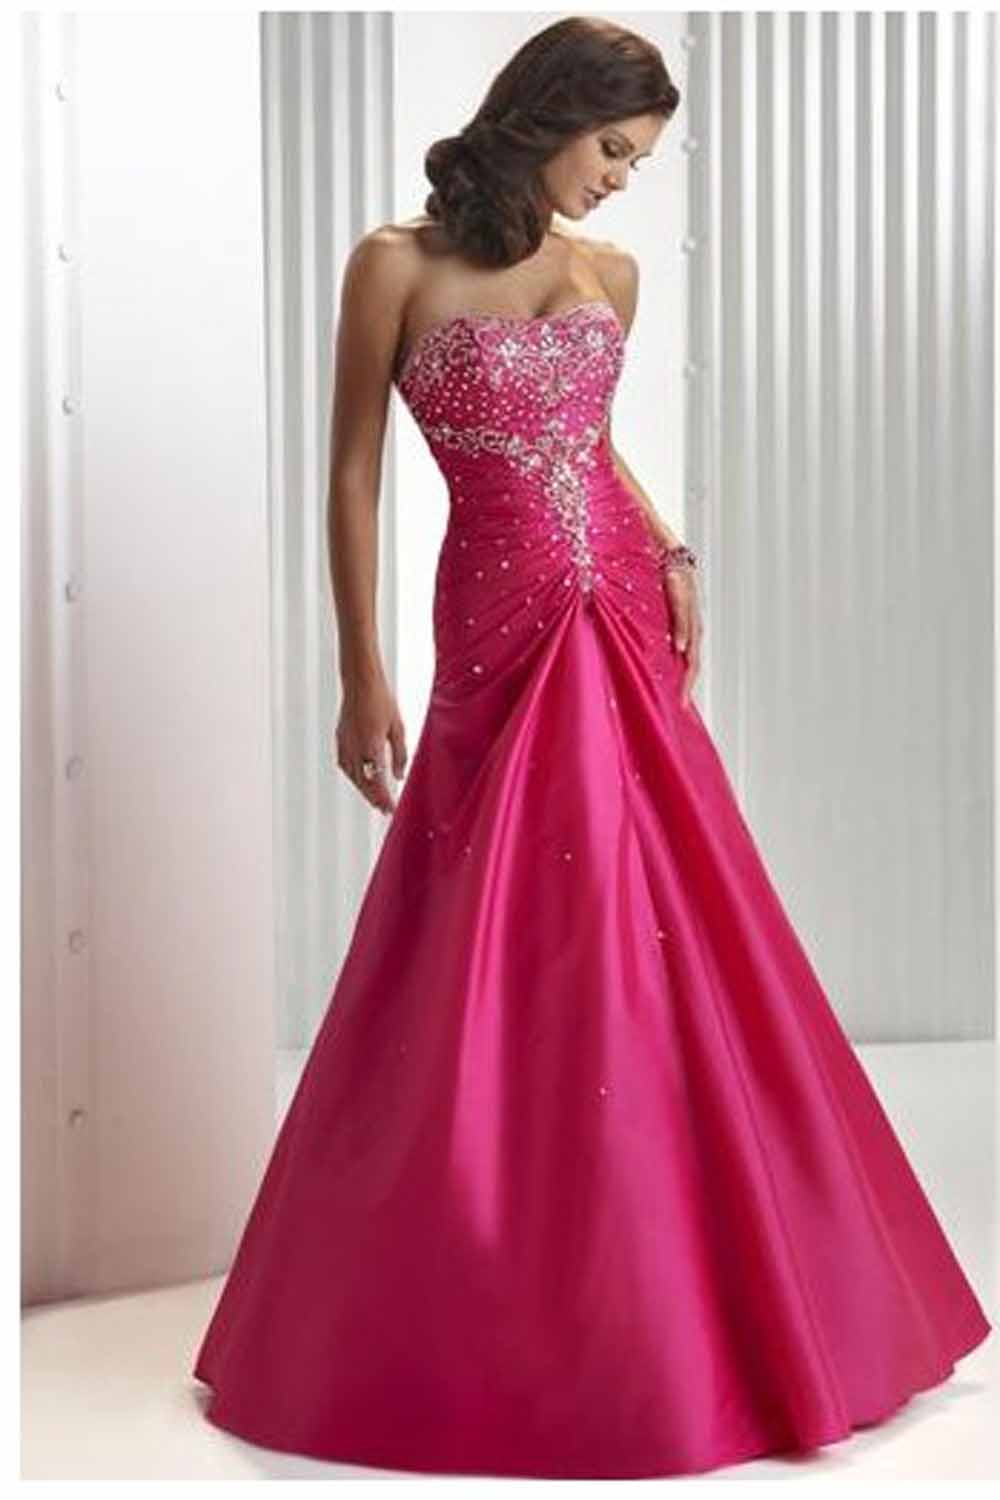 Design My Own Prom Dress Online Uk - Junoir Bridesmaid Dresses